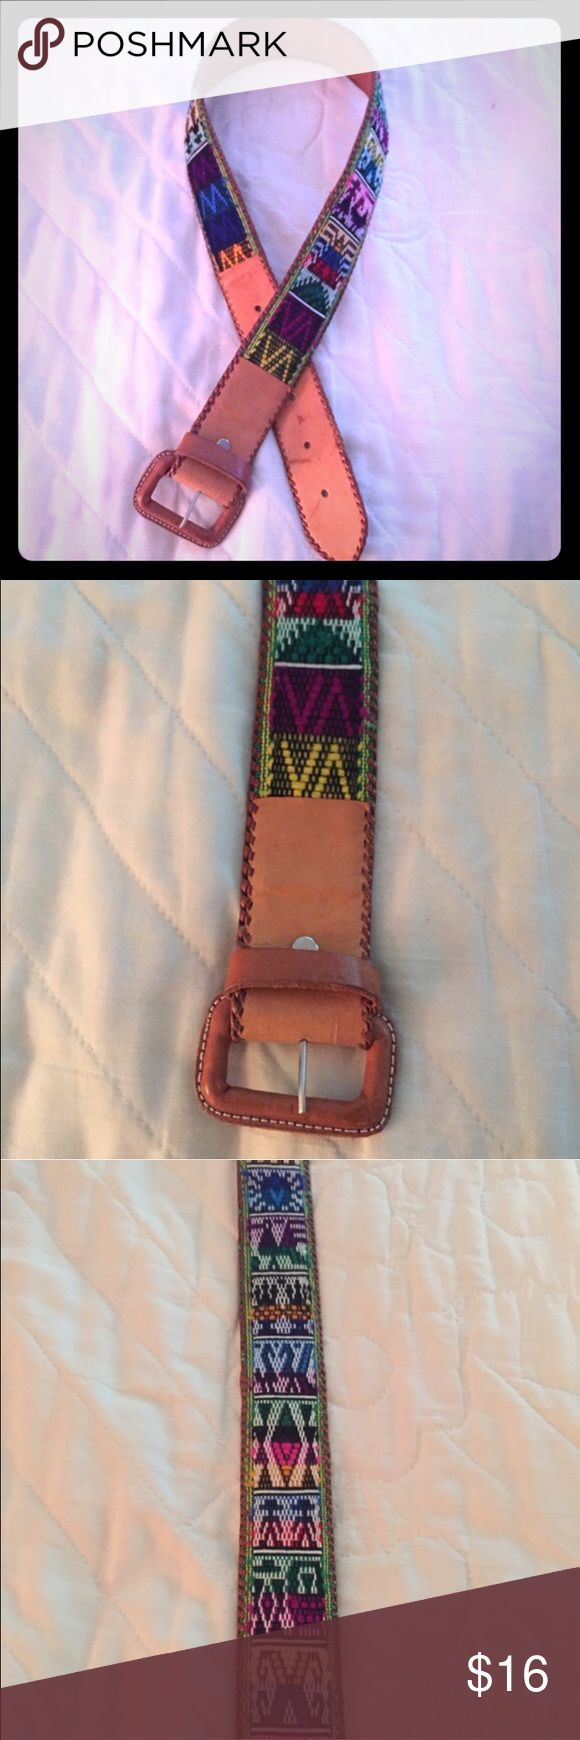 "Multi Colored Aztec Genuine Tan Leather Belt. 30"" Multi Colored Aztec Genuine Tan Leather Belt. 30"" (34"" if you count the buckle). See description above. Accessories Belts"